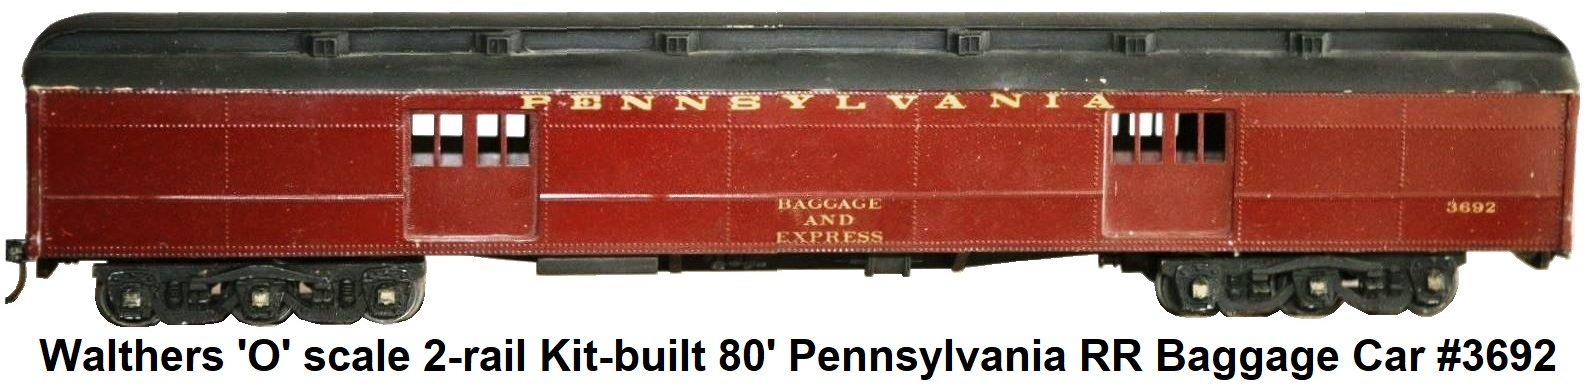 Walthers 'O' Scale 80' 2-rail Kit-built Pennsylvania RR Baggage Car